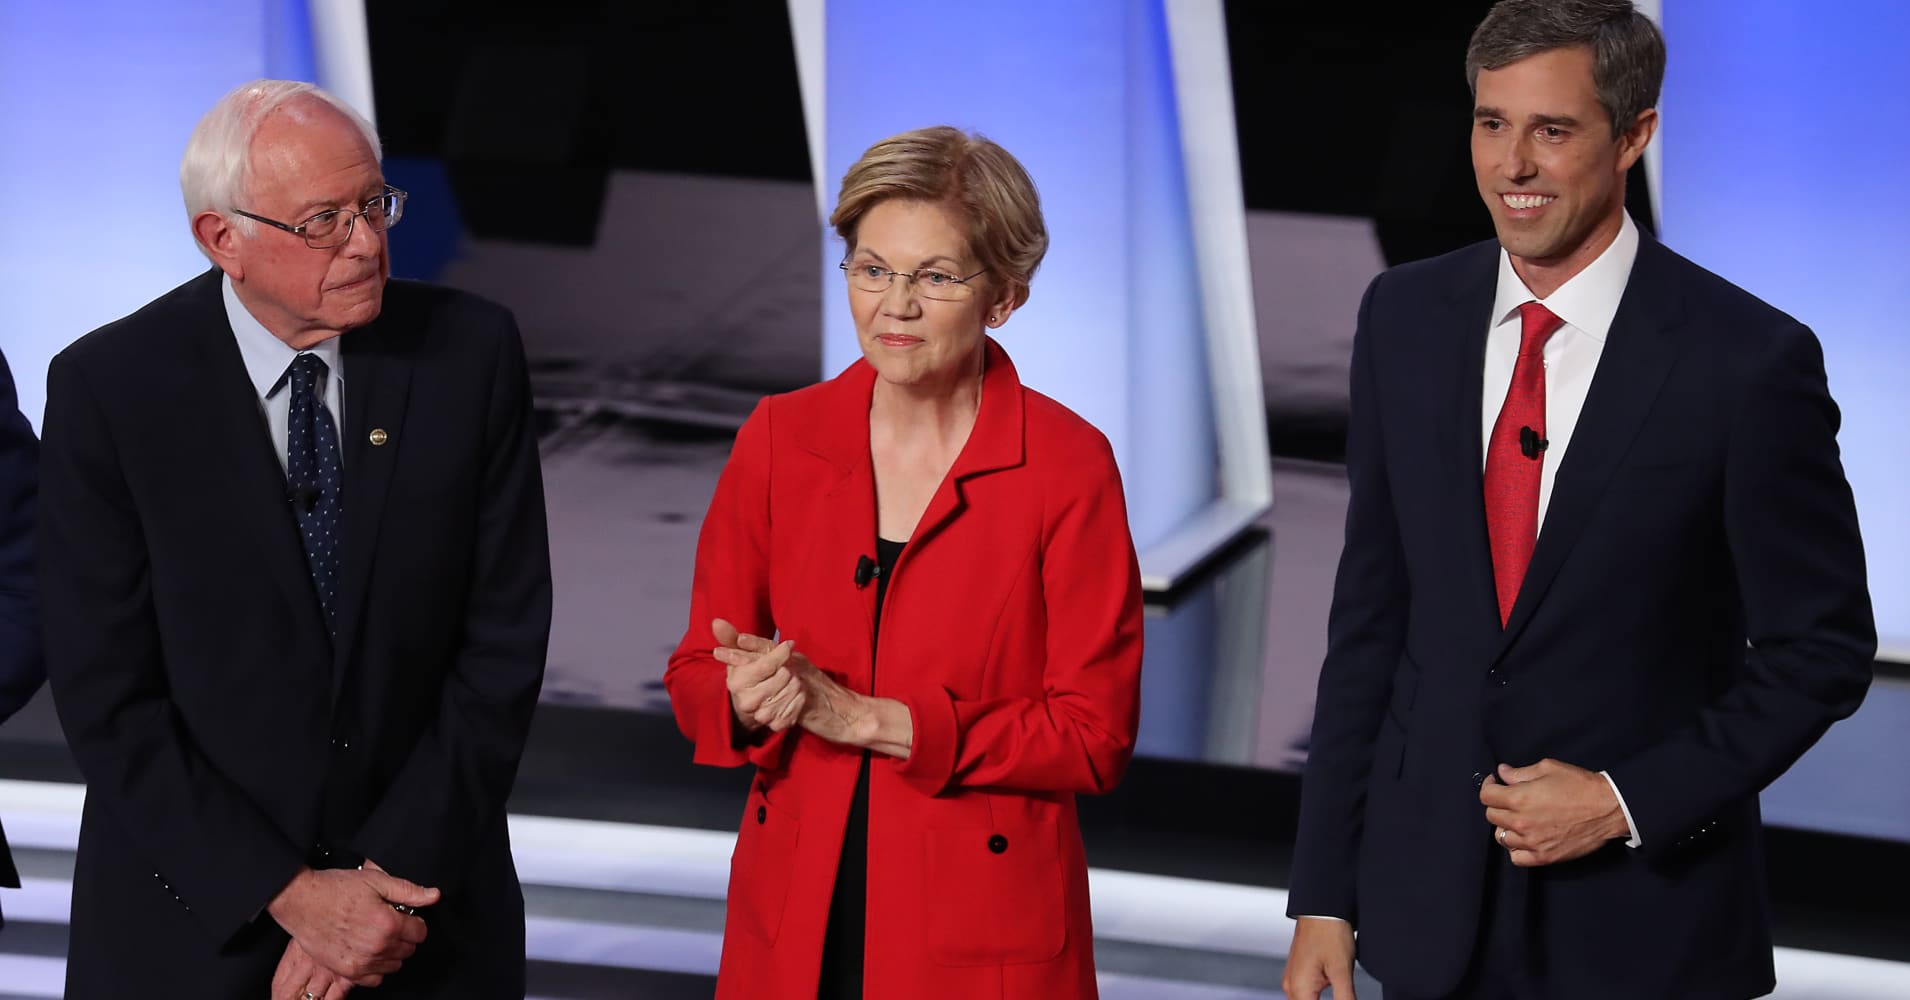 Democratic presidential candidates former Texas congressman Beto O'Rourke (left), Sen. Elizabeth Warren (D-Mass.), and Sen. Bernie Sanders (I-Vt.) take the stage at the Democratic Presidential Debate in Detroit, Michigan.